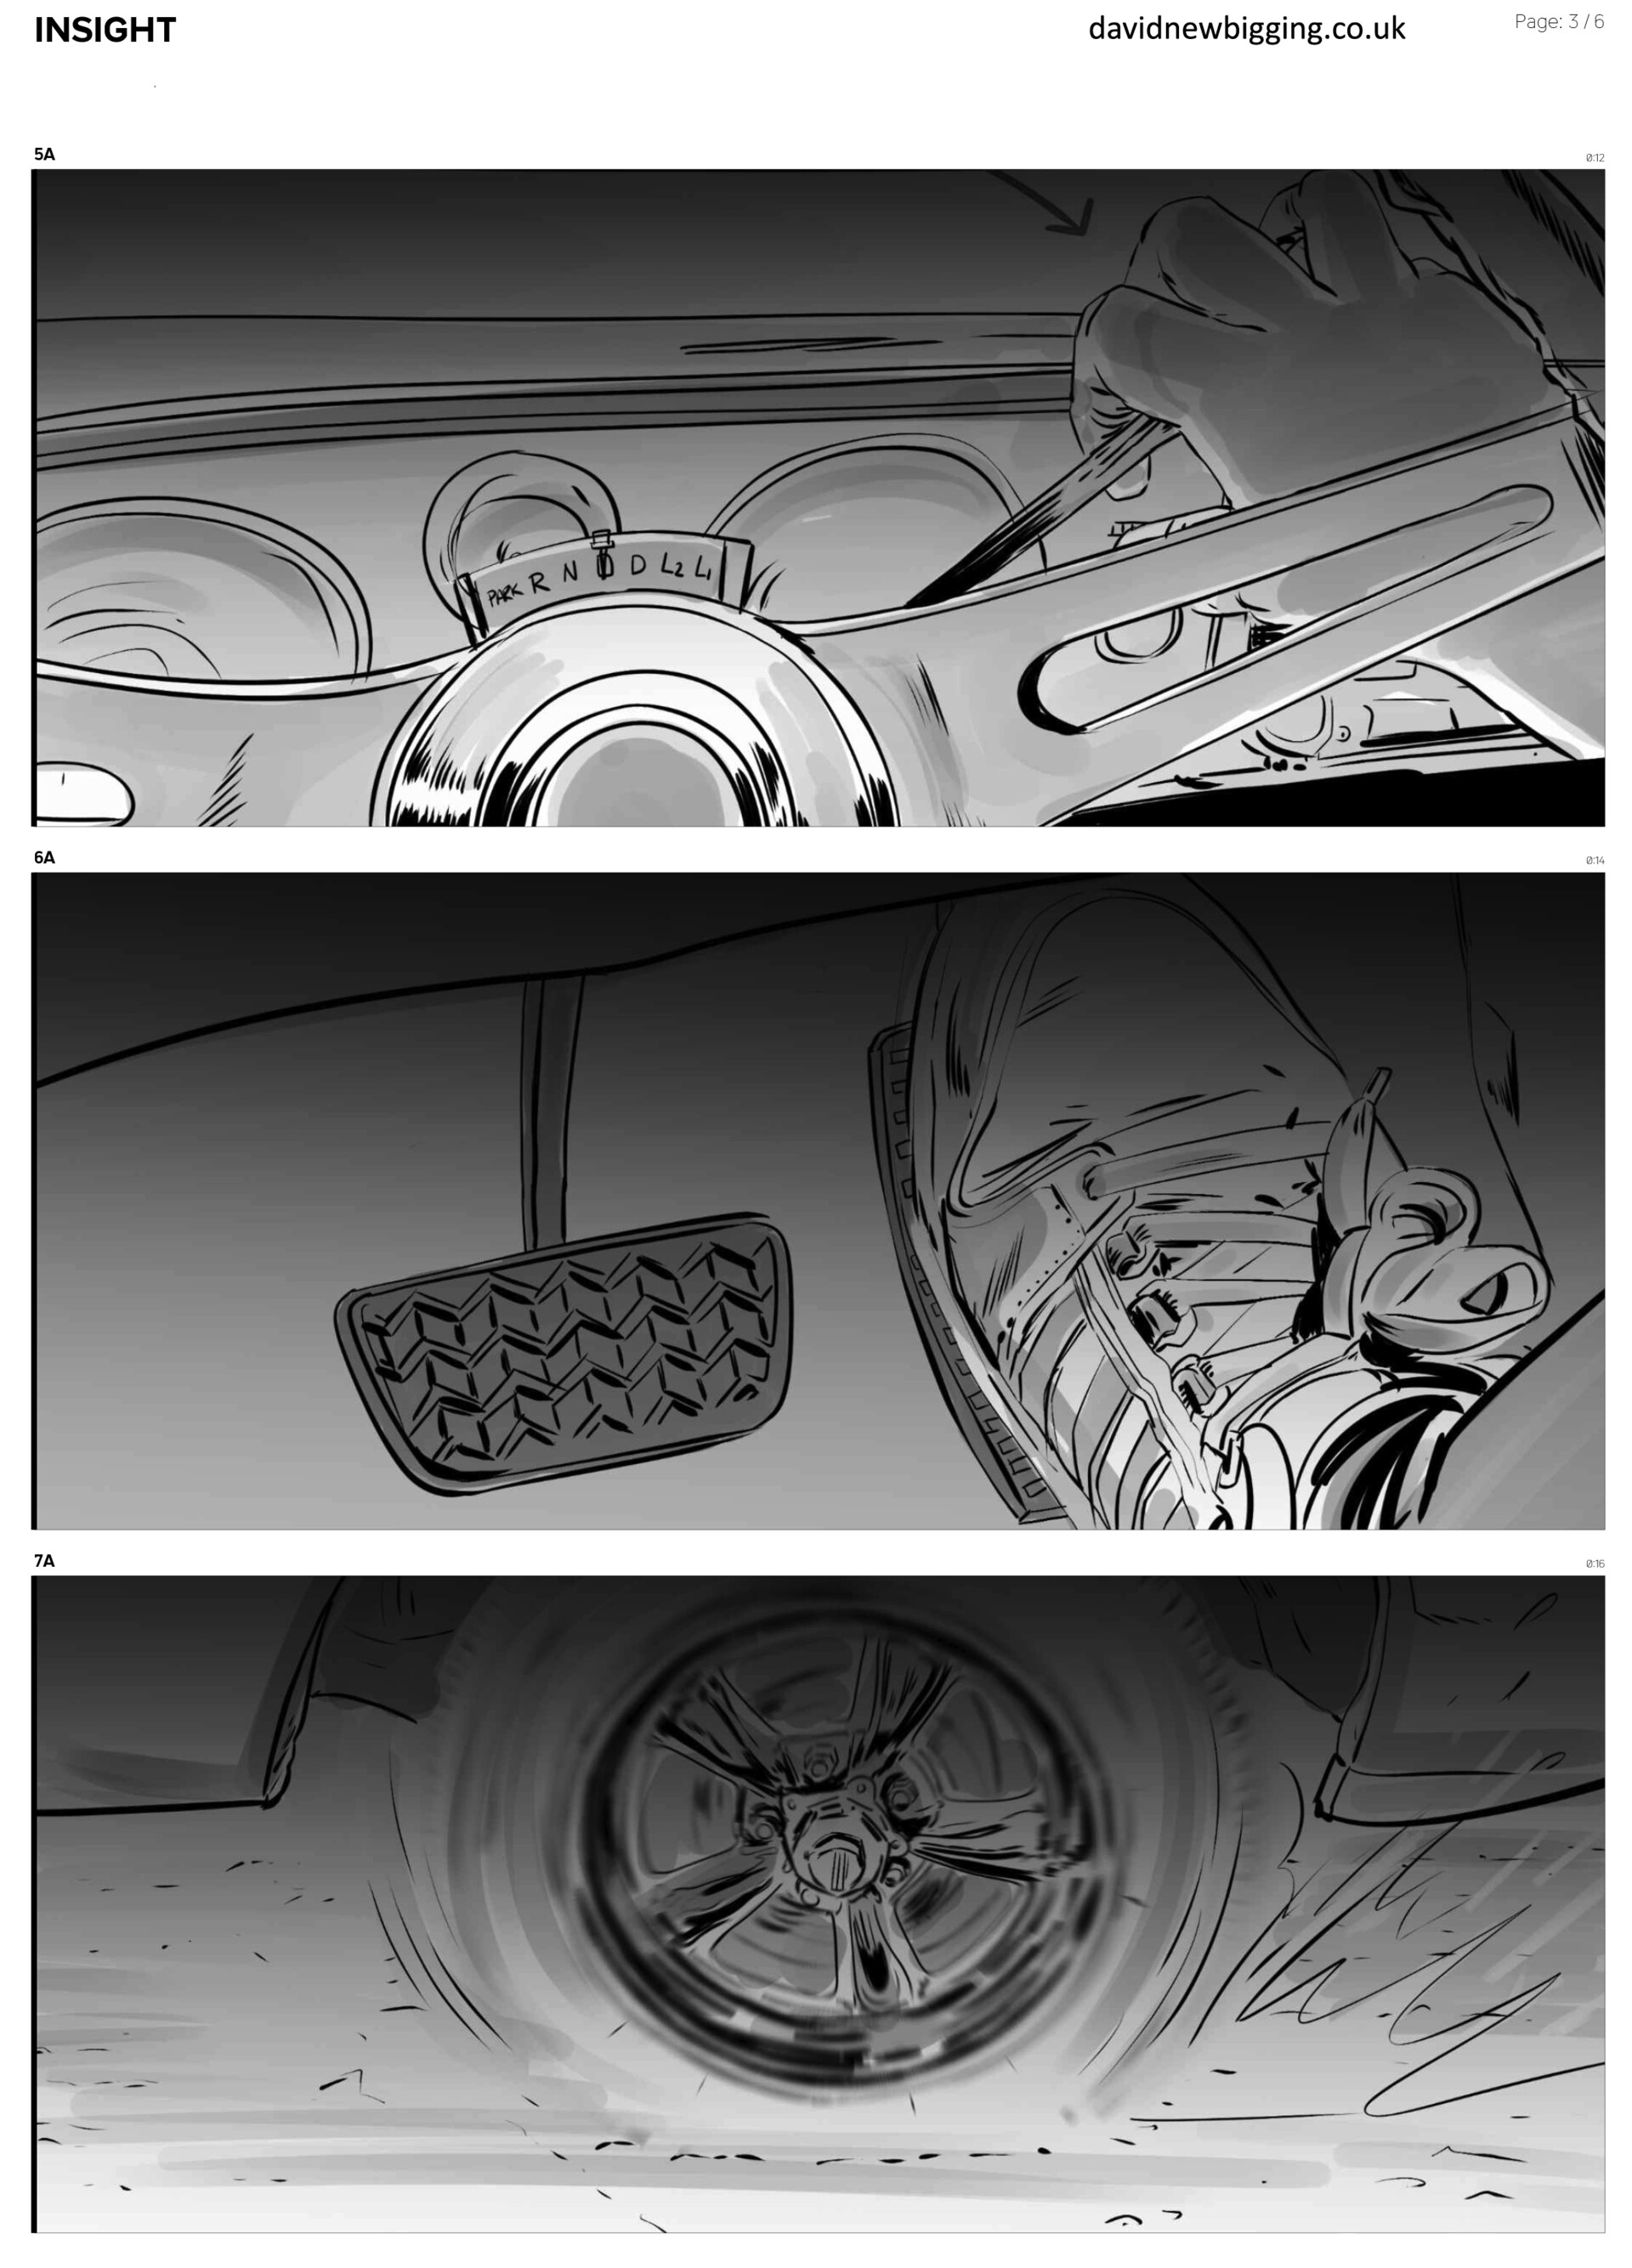 David newbigging insight teaser storyboards v2 3